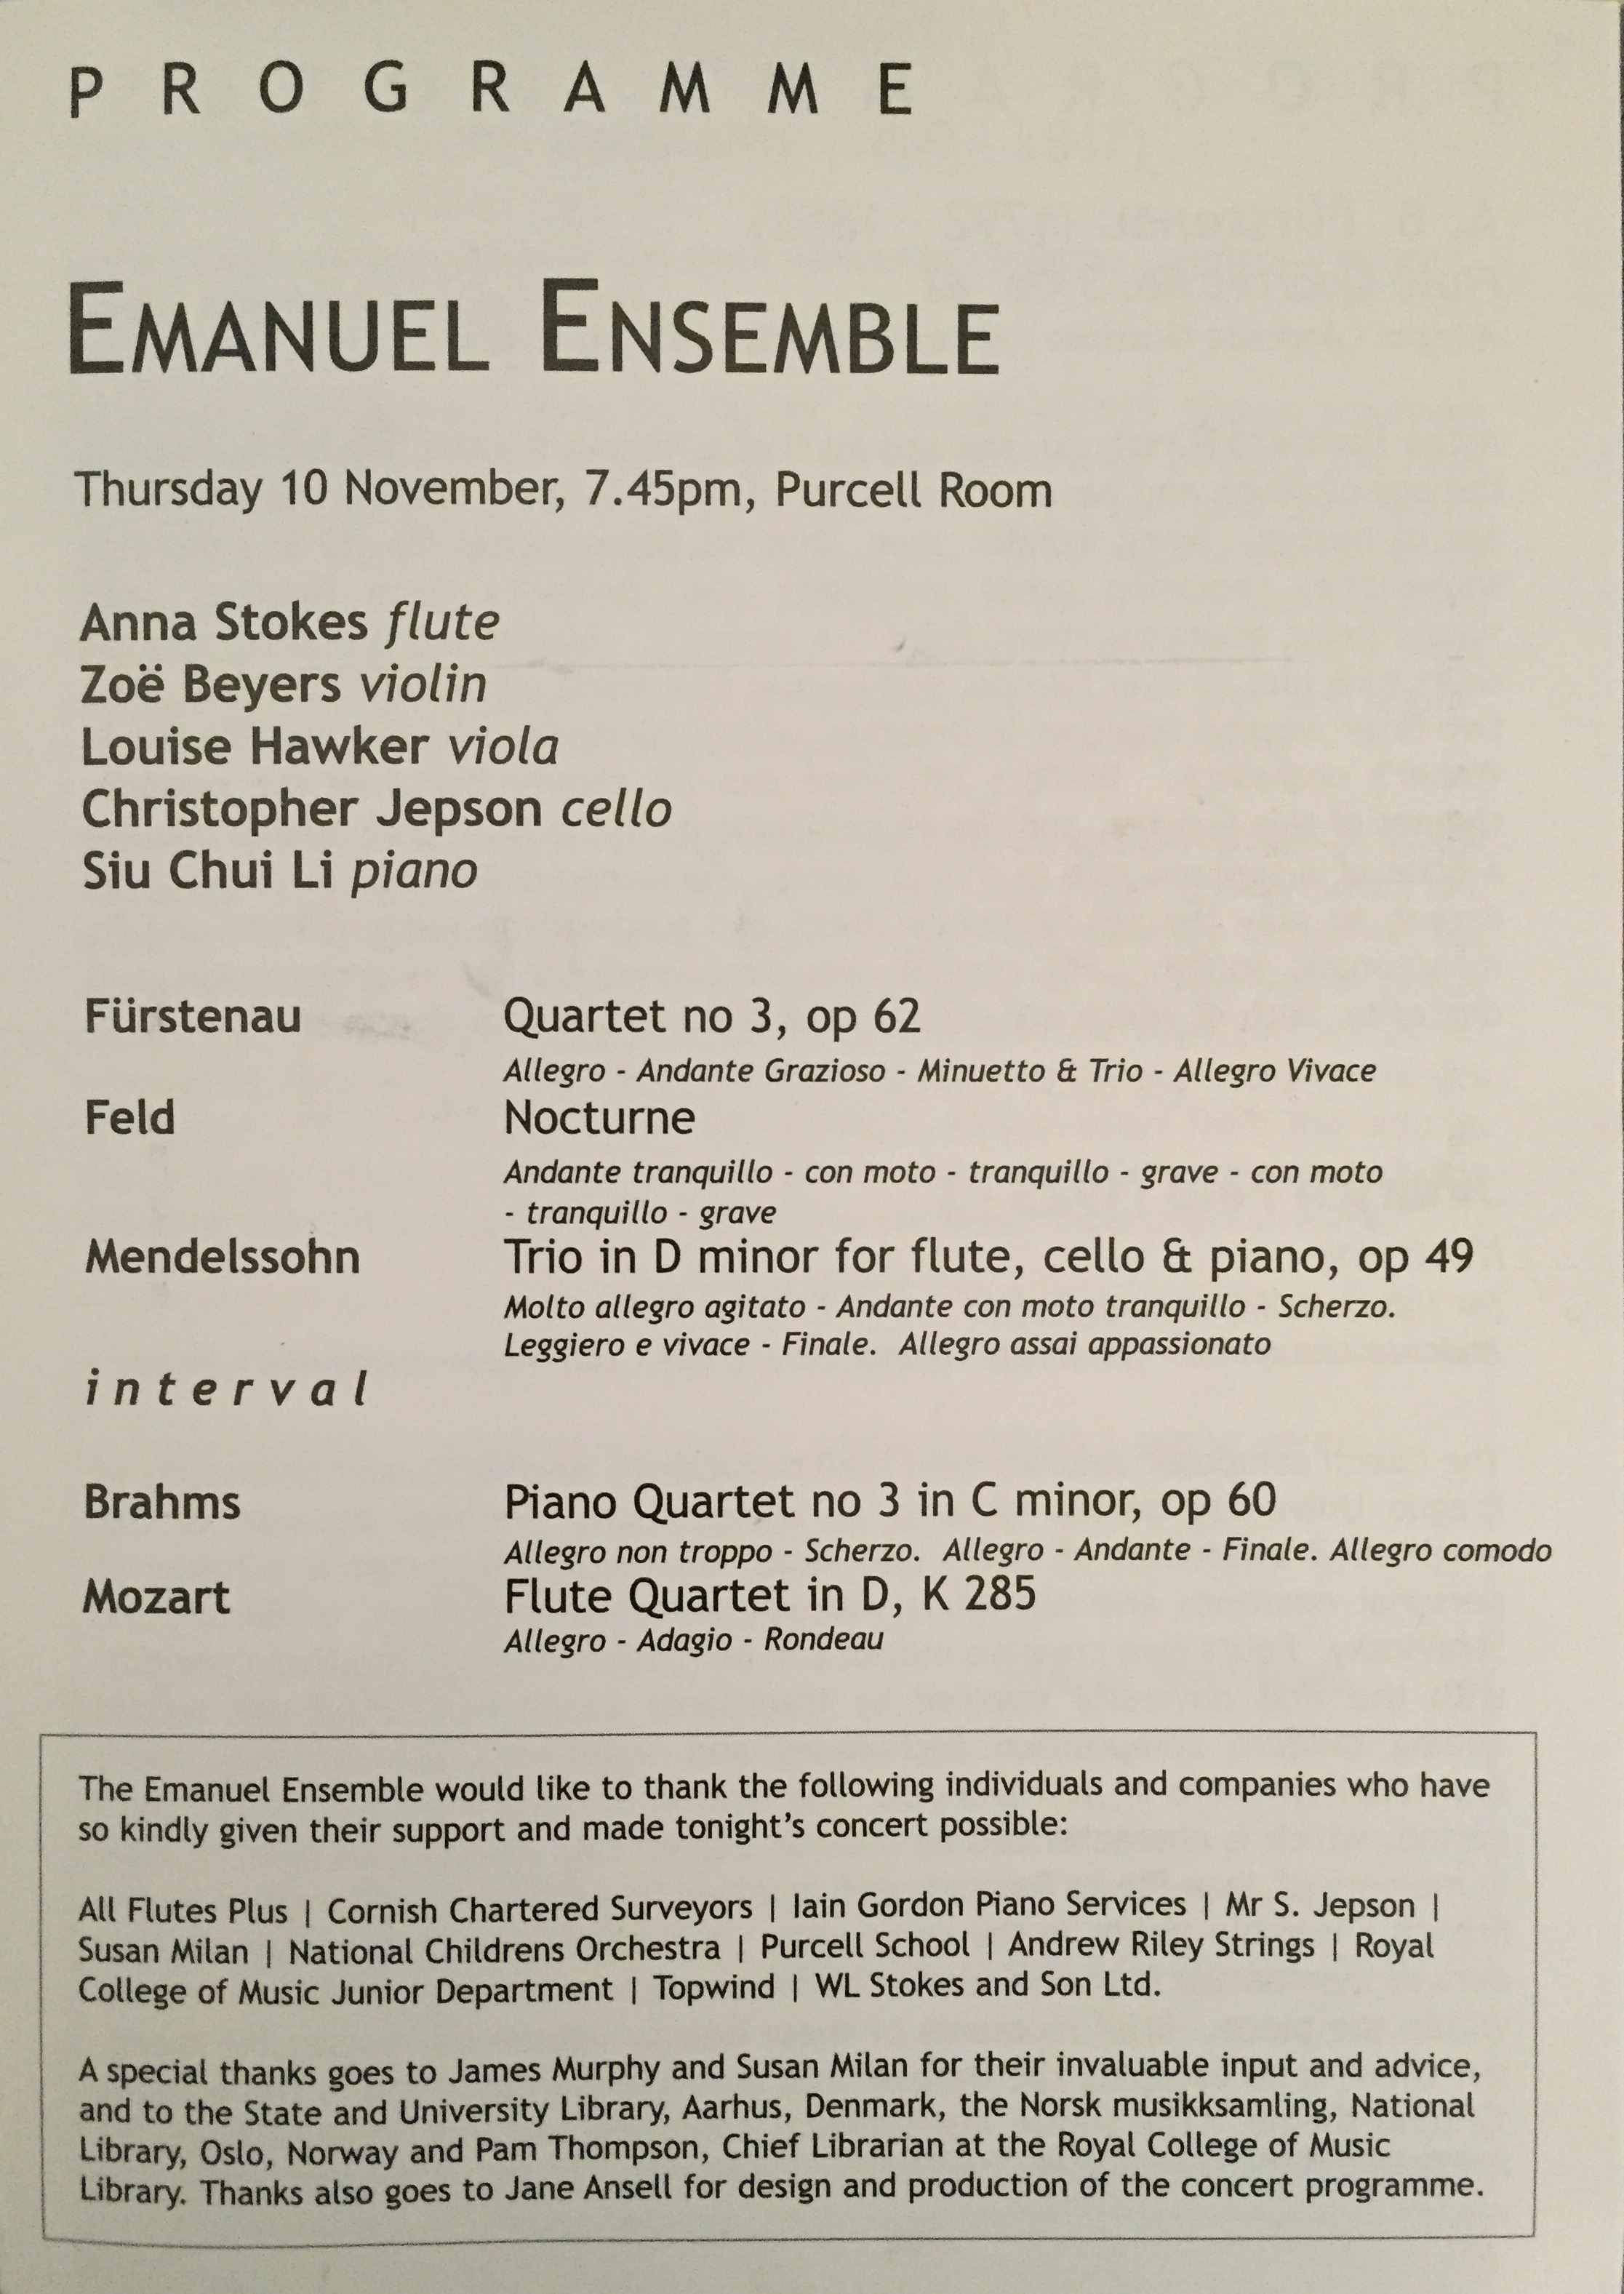 Purcell Room Debut-Anna Stokes Flute-Emanuel Ensemble Inside Programme